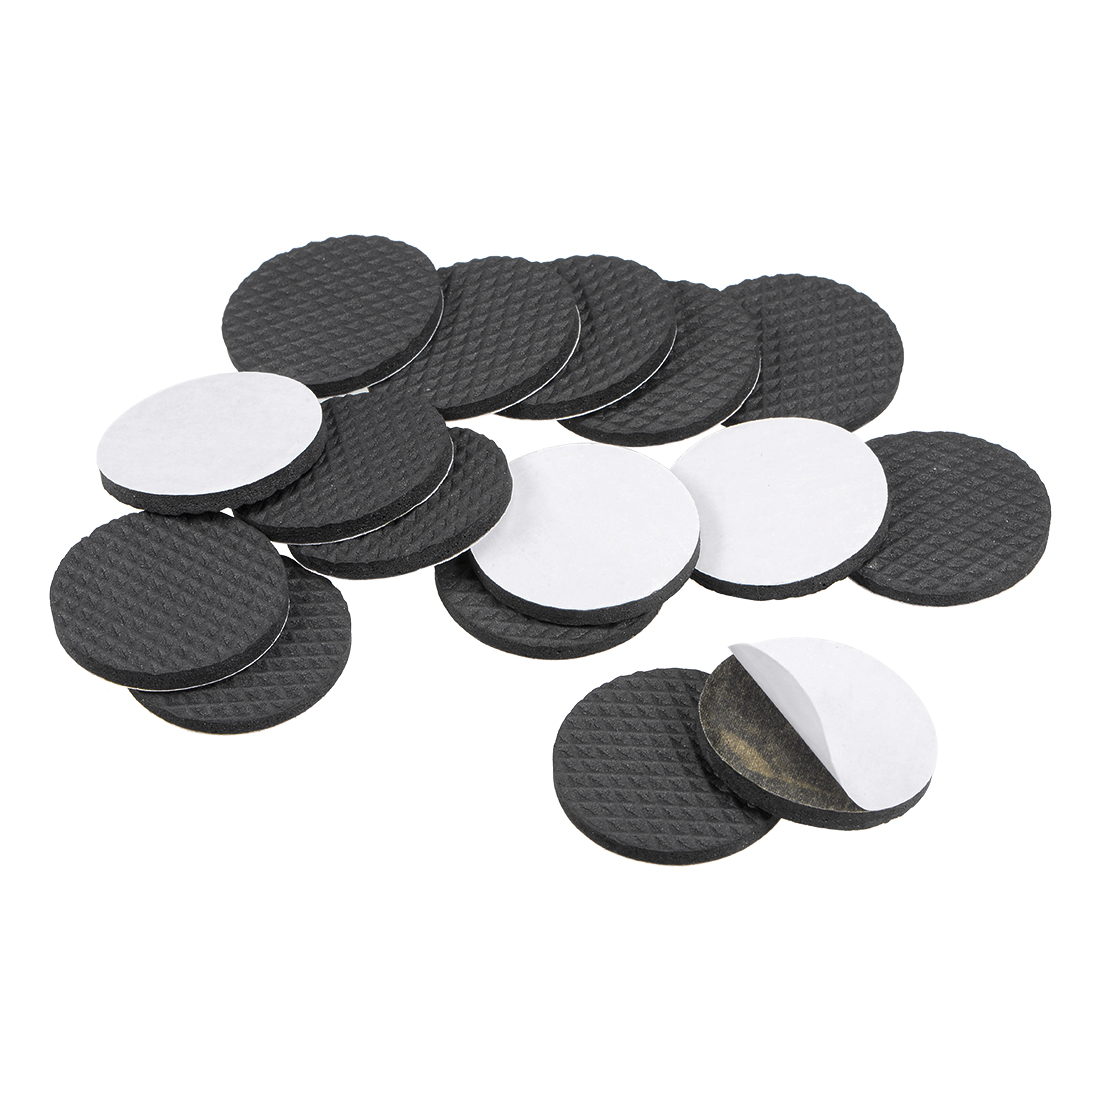 Furniture Pads Adhesive Rubber Pads 38mm Dia 4mm Thick Round Black 48Pcs